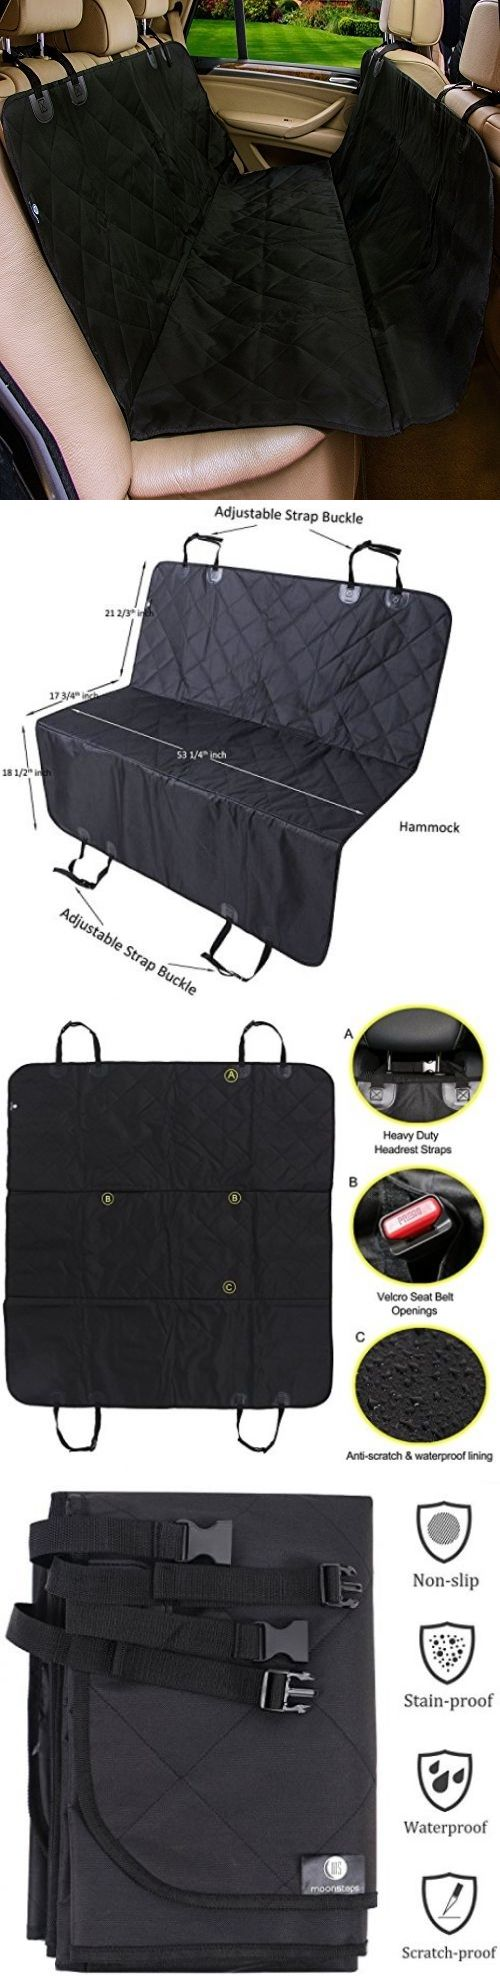 Car Seat Covers 117426: Pet Car Seat Cover For Cars, Moonsteps Waterproof Dog Hammock Seat Cover For - BUY IT NOW ONLY: $46.76